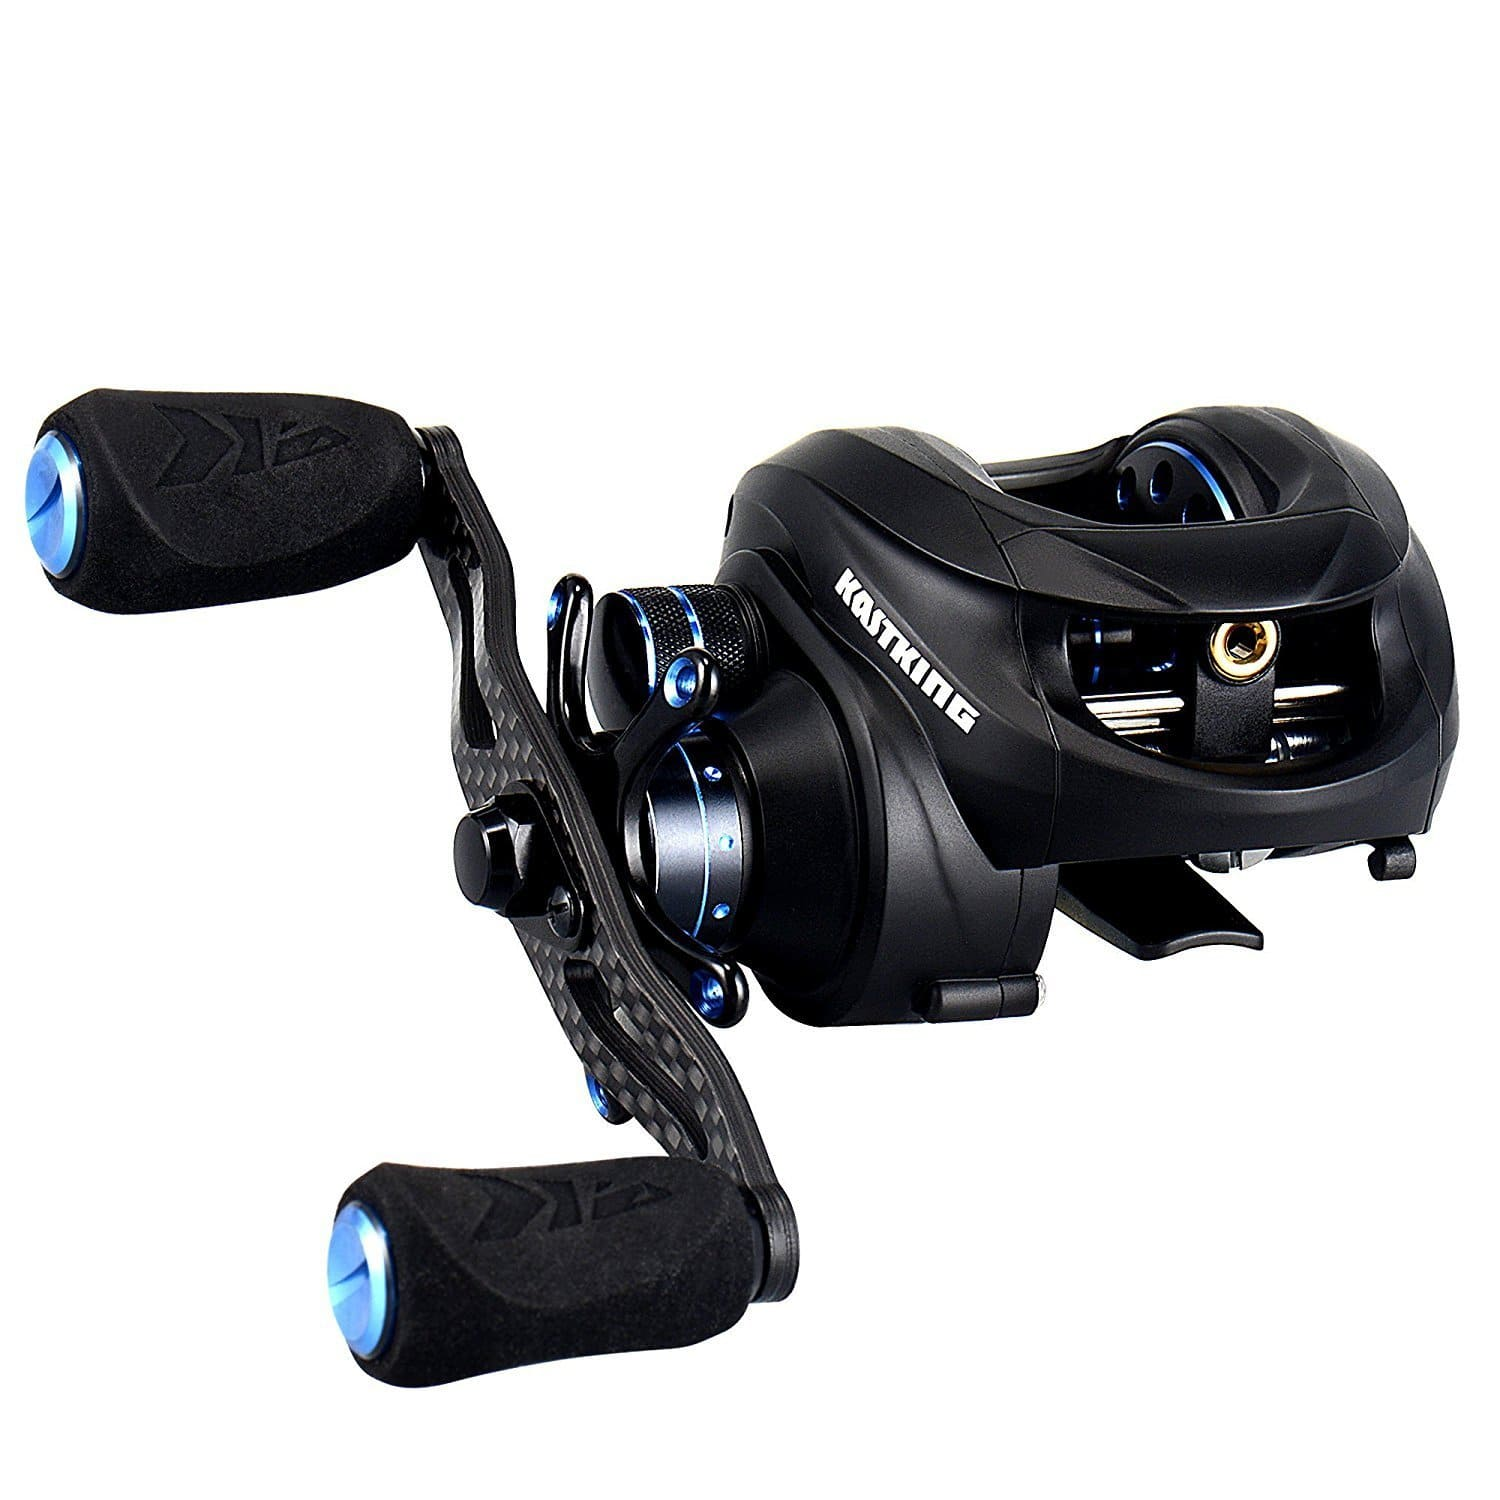 Carbon Baitcasting Reel for Fishing - $41.99 after promo code and free shipping